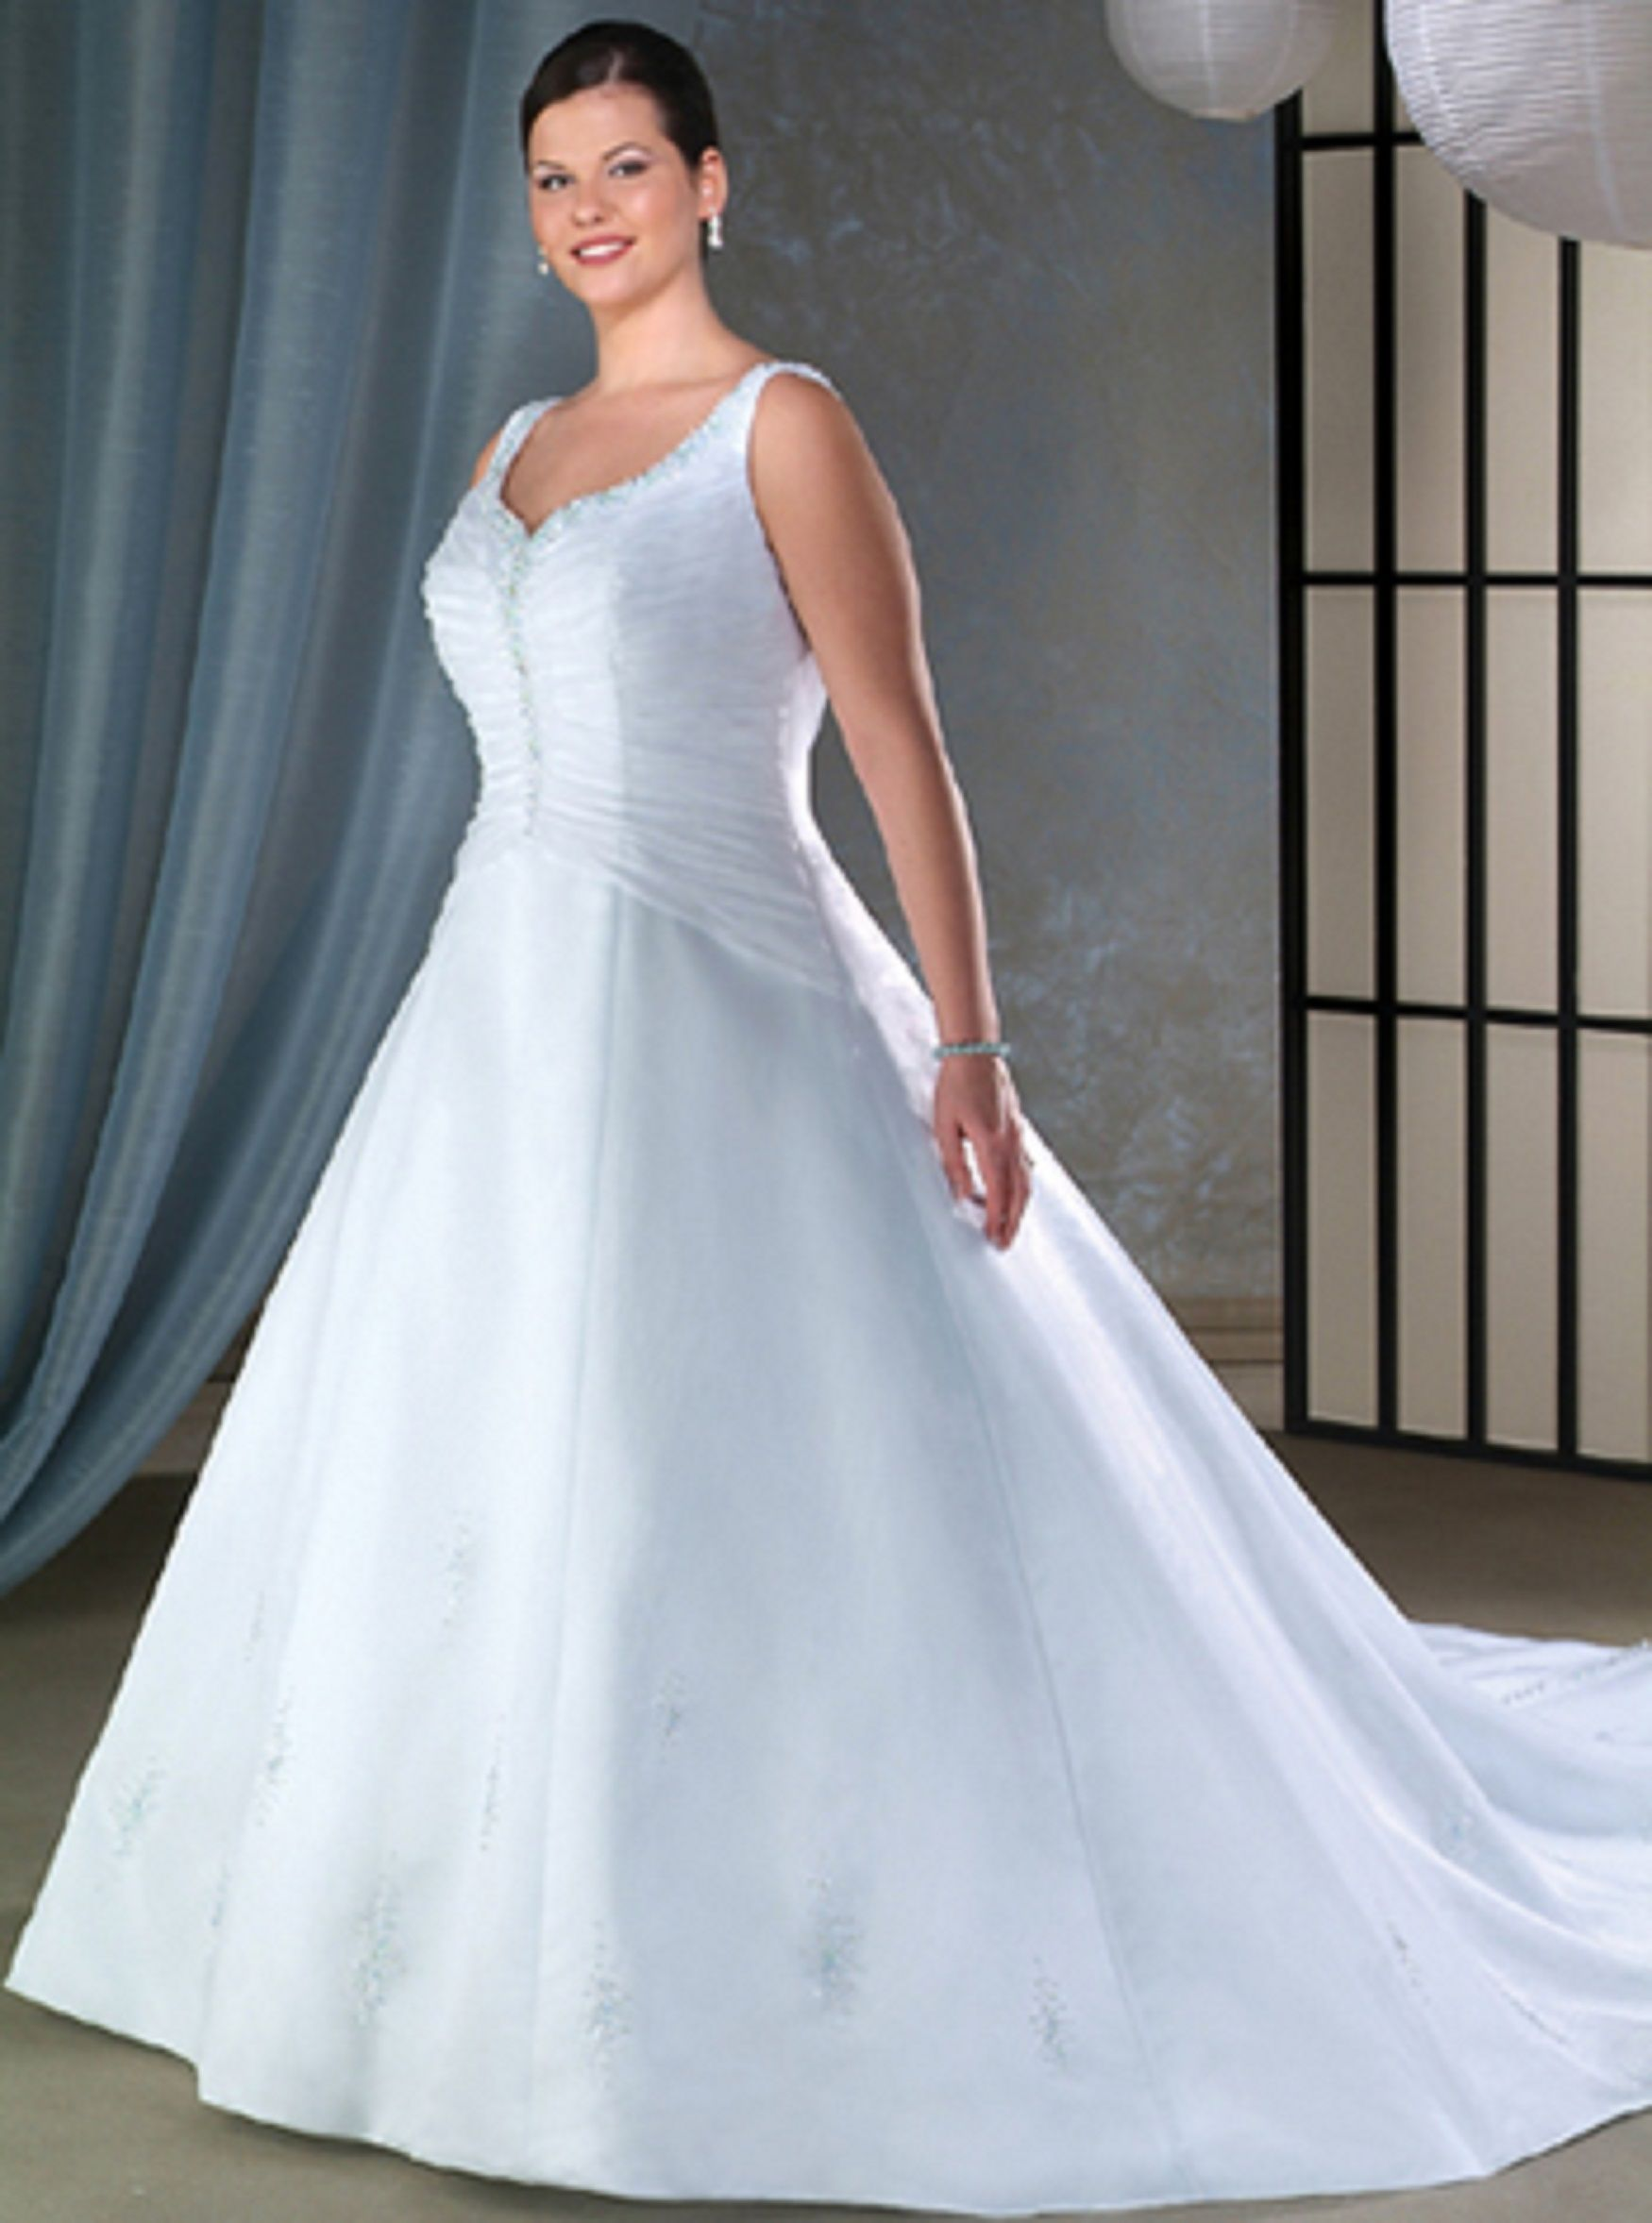 d4e1883a31e05 plus size wedding dress patterns